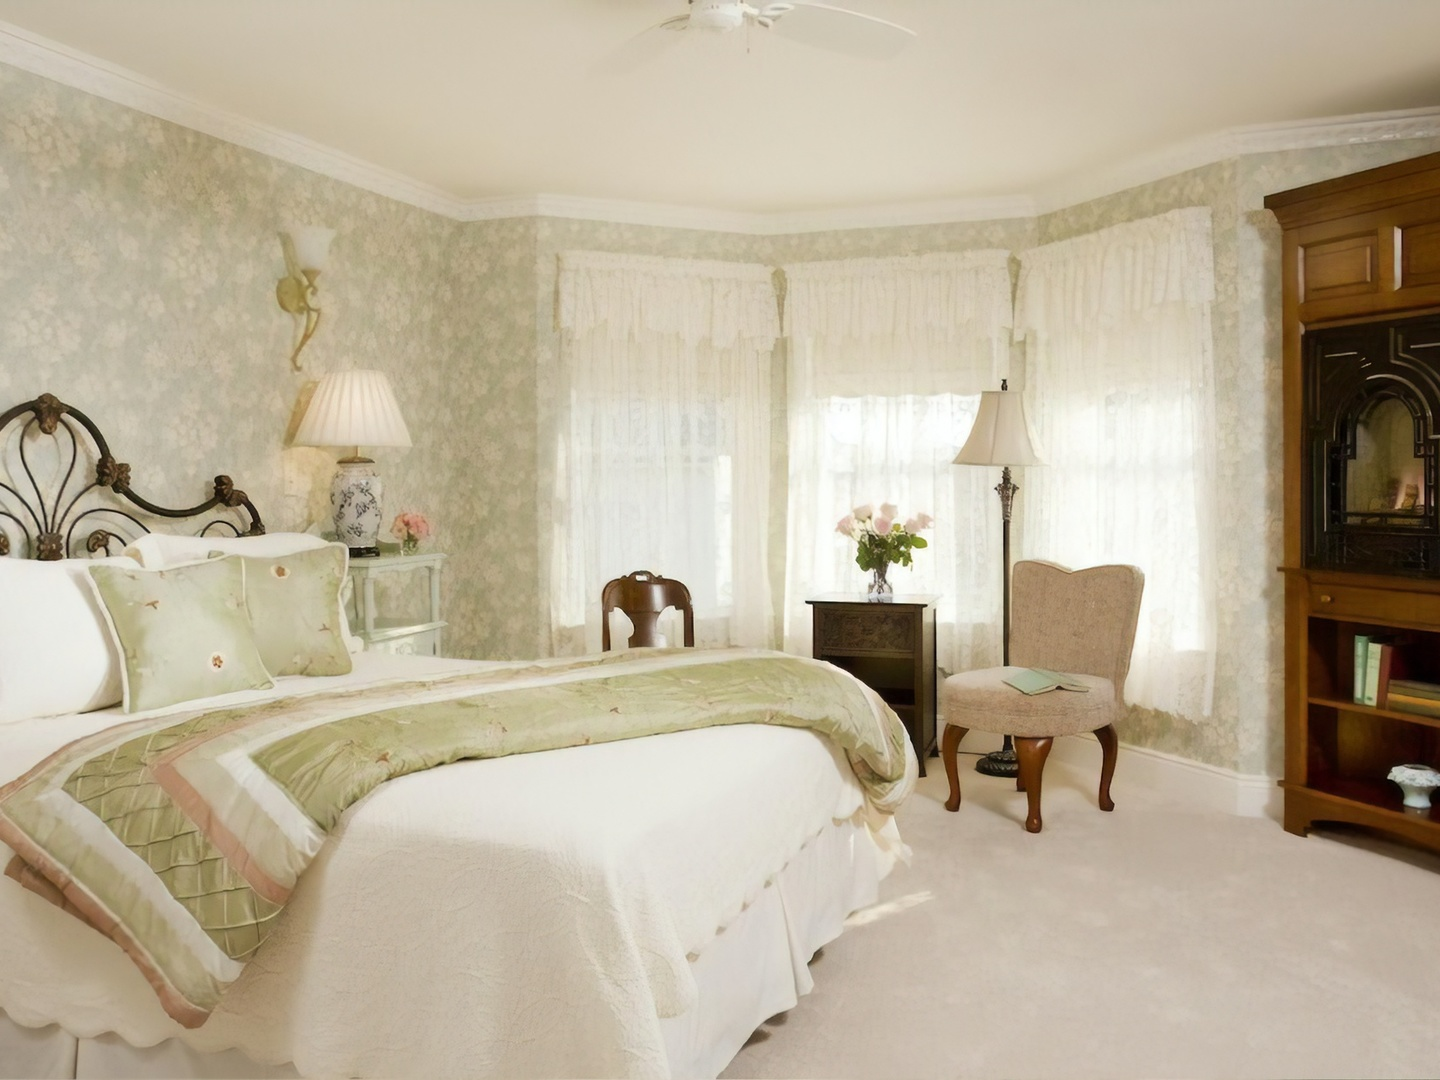 A bedroom with a large bed in a room at Wilbraham Mansion.